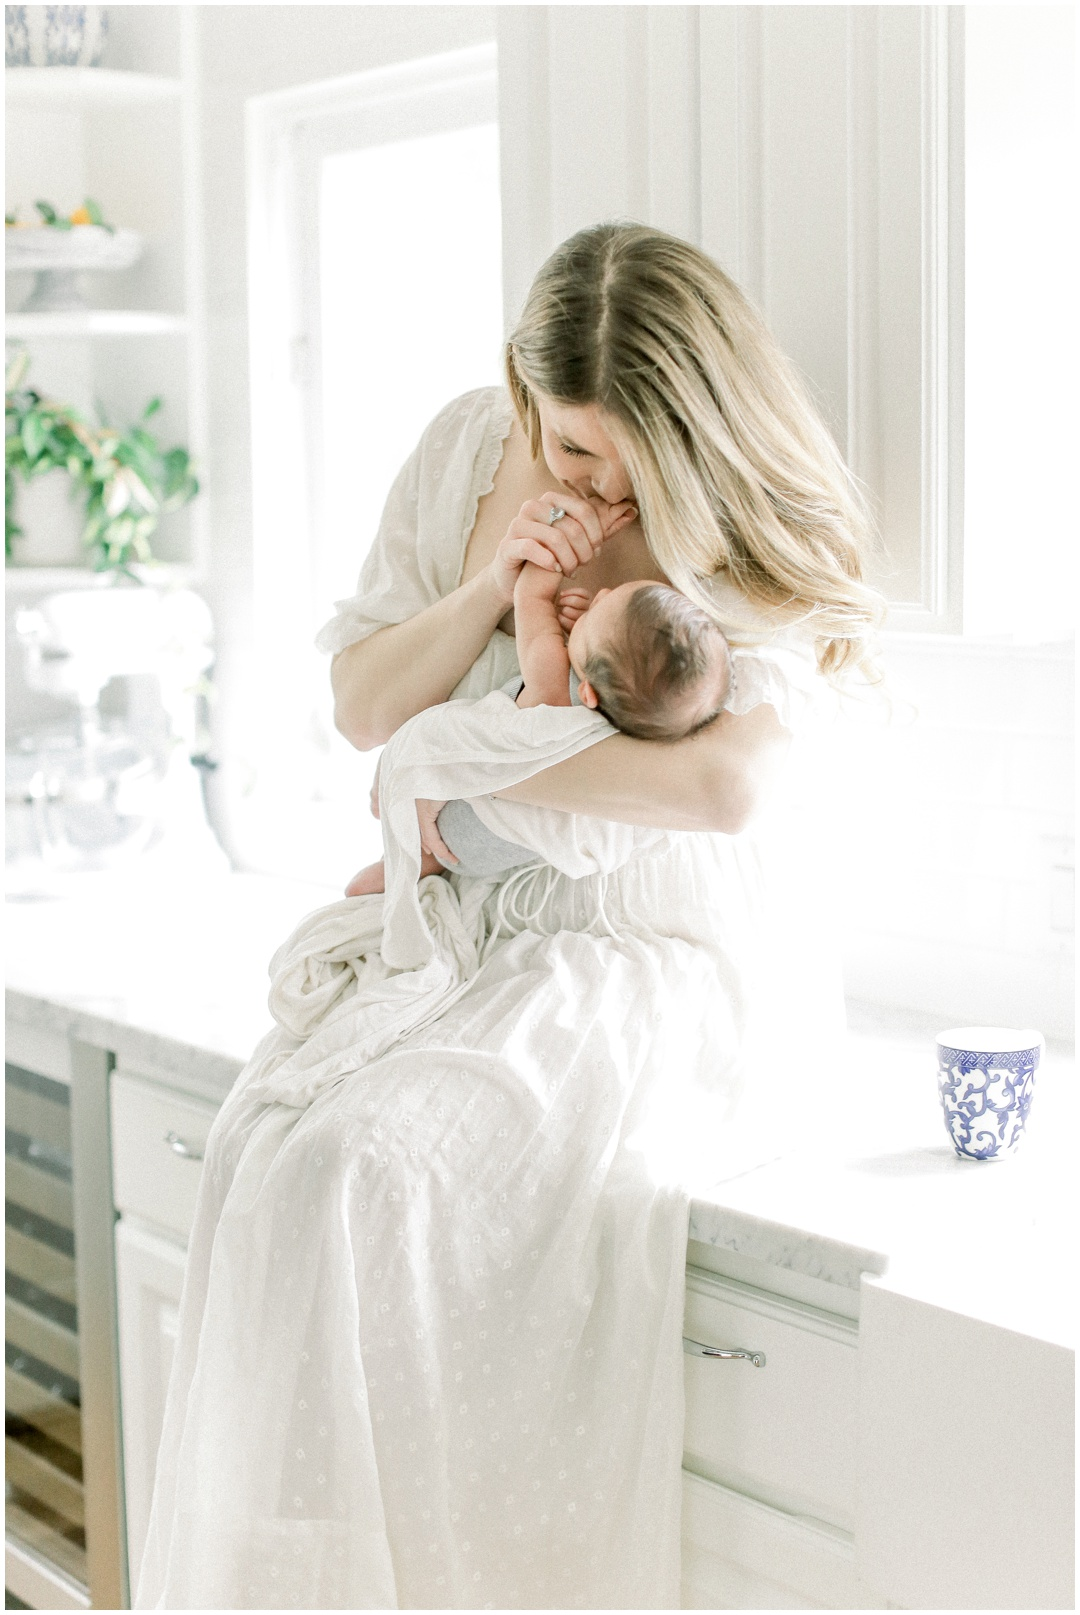 Newport_Beach_Newborn_Light_Airy_Natural_Photographer_Newport_Beach_Photographer_Orange_County_Family_Photographer_Cori_Kleckner_Photography_Huntington_Beach_Photographer_Family_OC_Maternity_Breanna_Santillo__3690.jpg